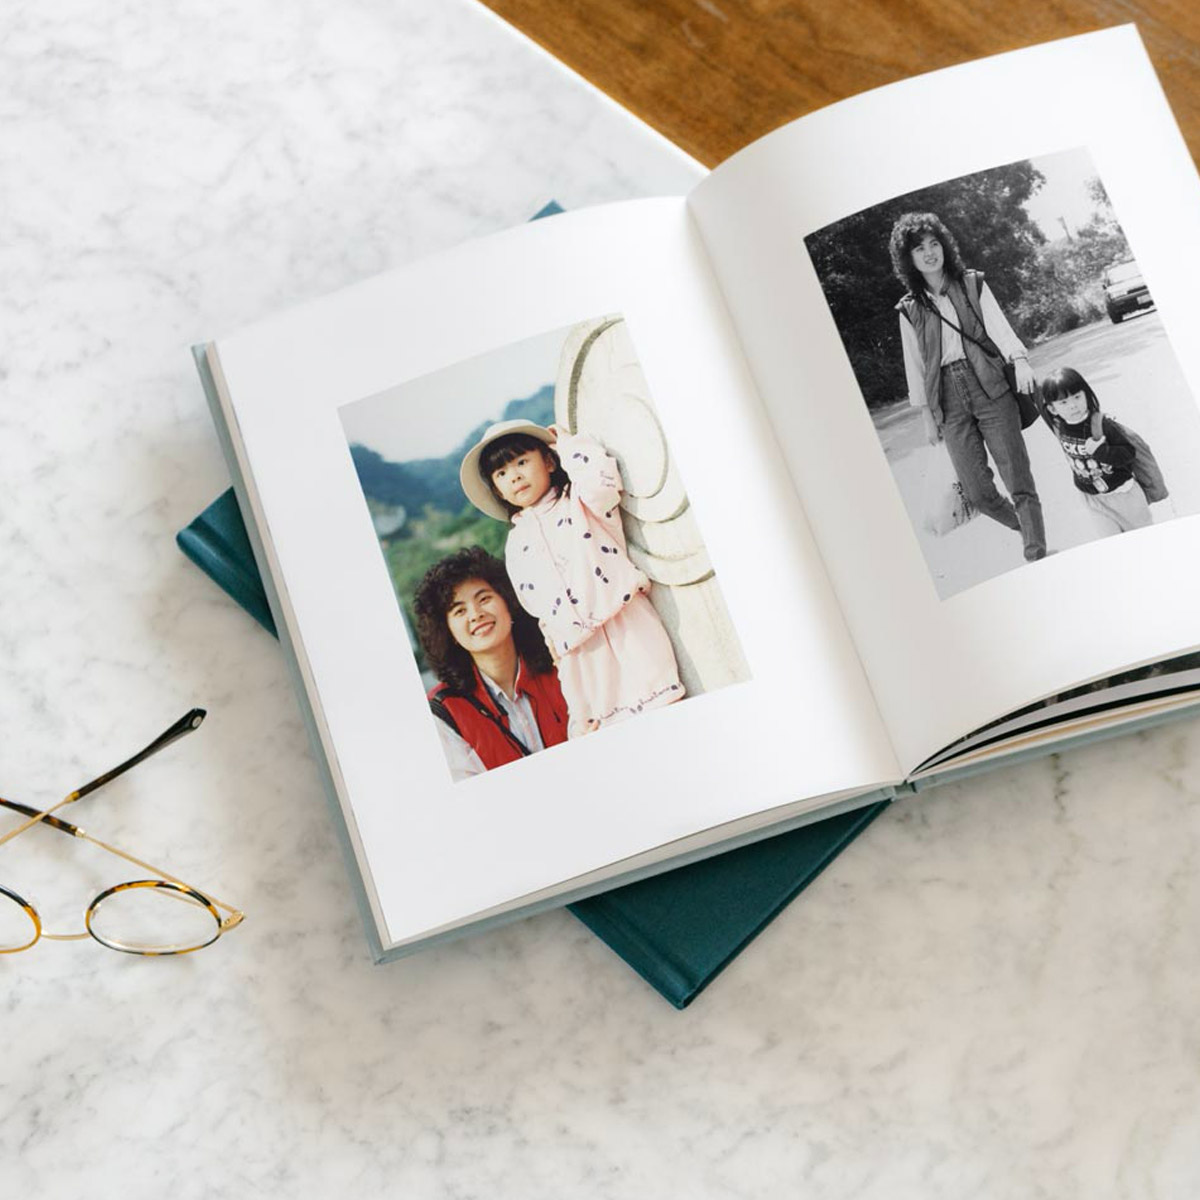 Hardcover photo book opened to photos of mom with daughter